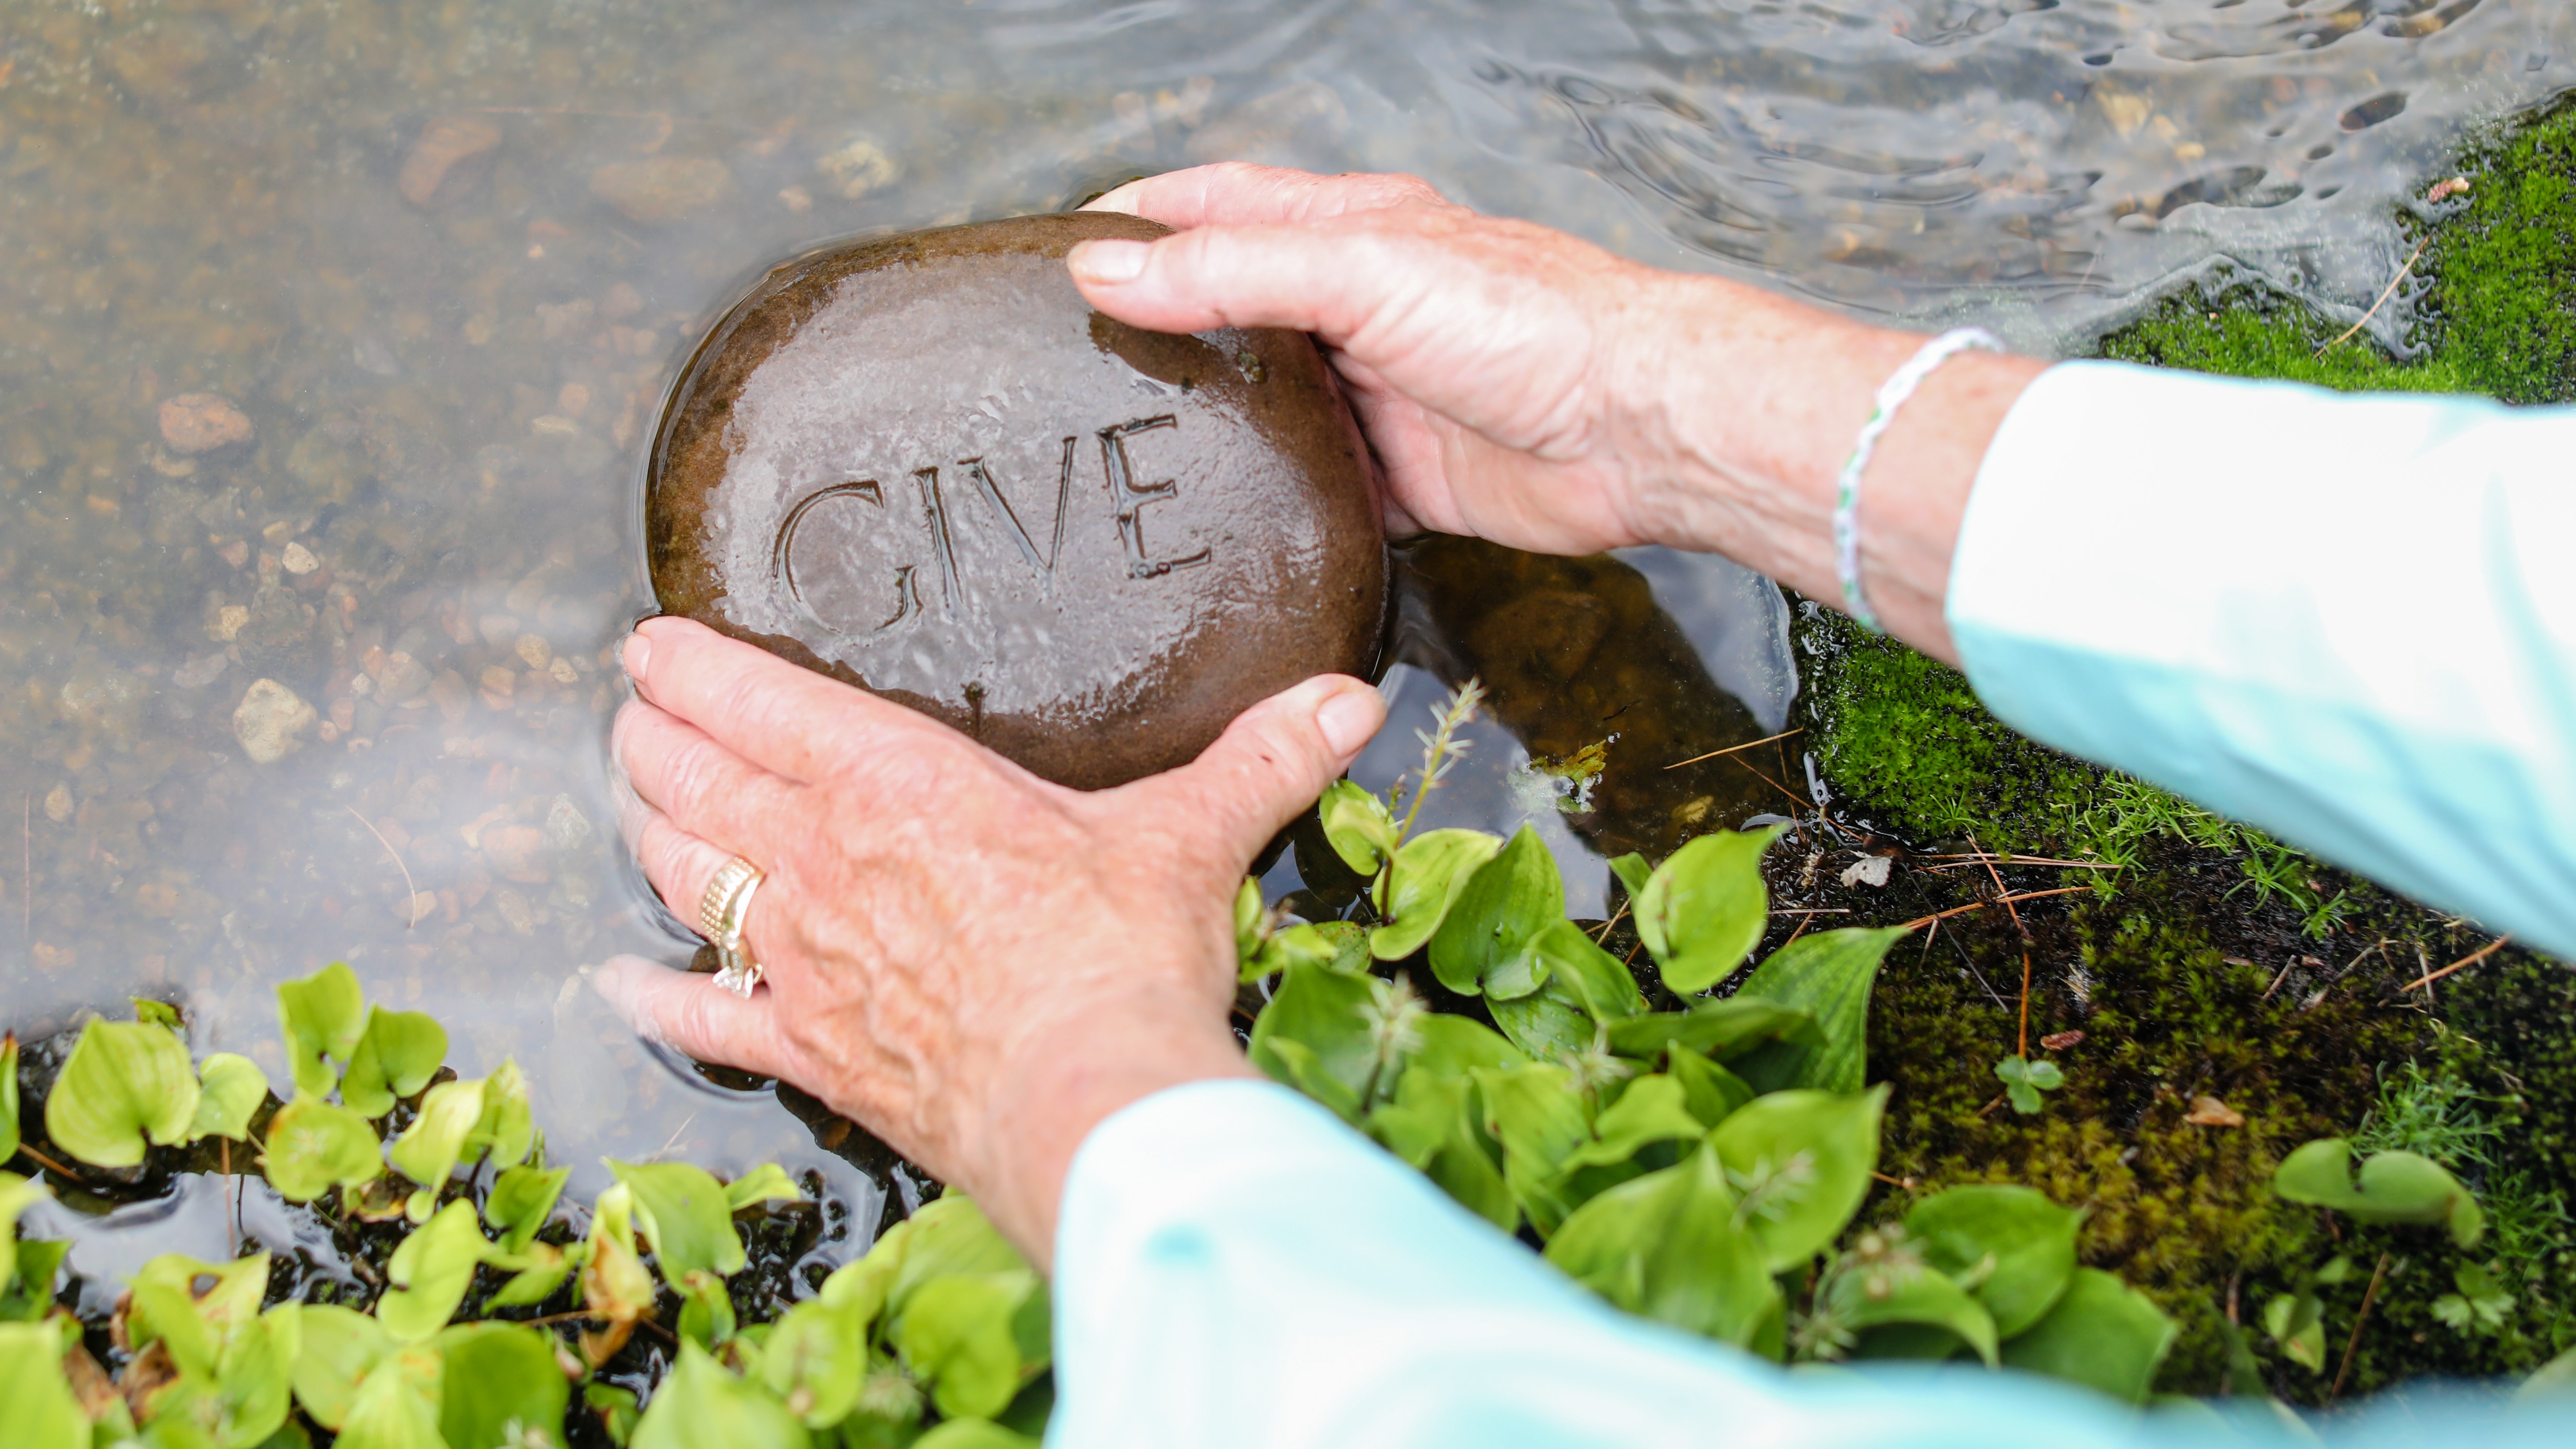 Hands holding rock engraved with the word give in water